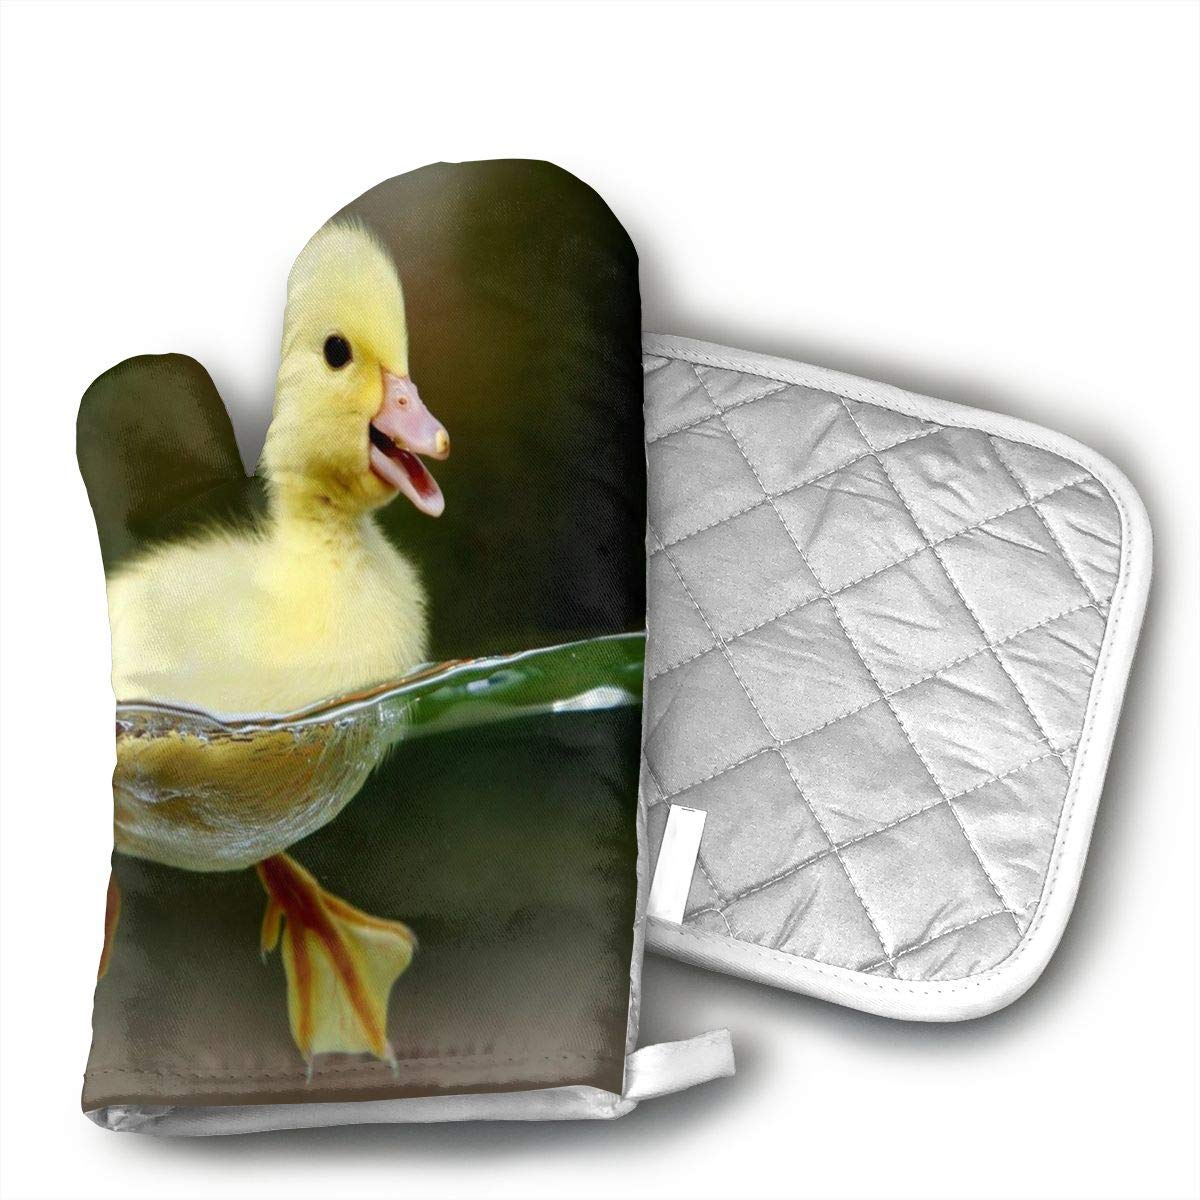 HAIQLK Animals Yellow Baby Duck Oven Mitts, with The Heat Resistance of Silicone and Flexibility of Cotton, Recycled Cotton Infill, Terrycloth Lining,